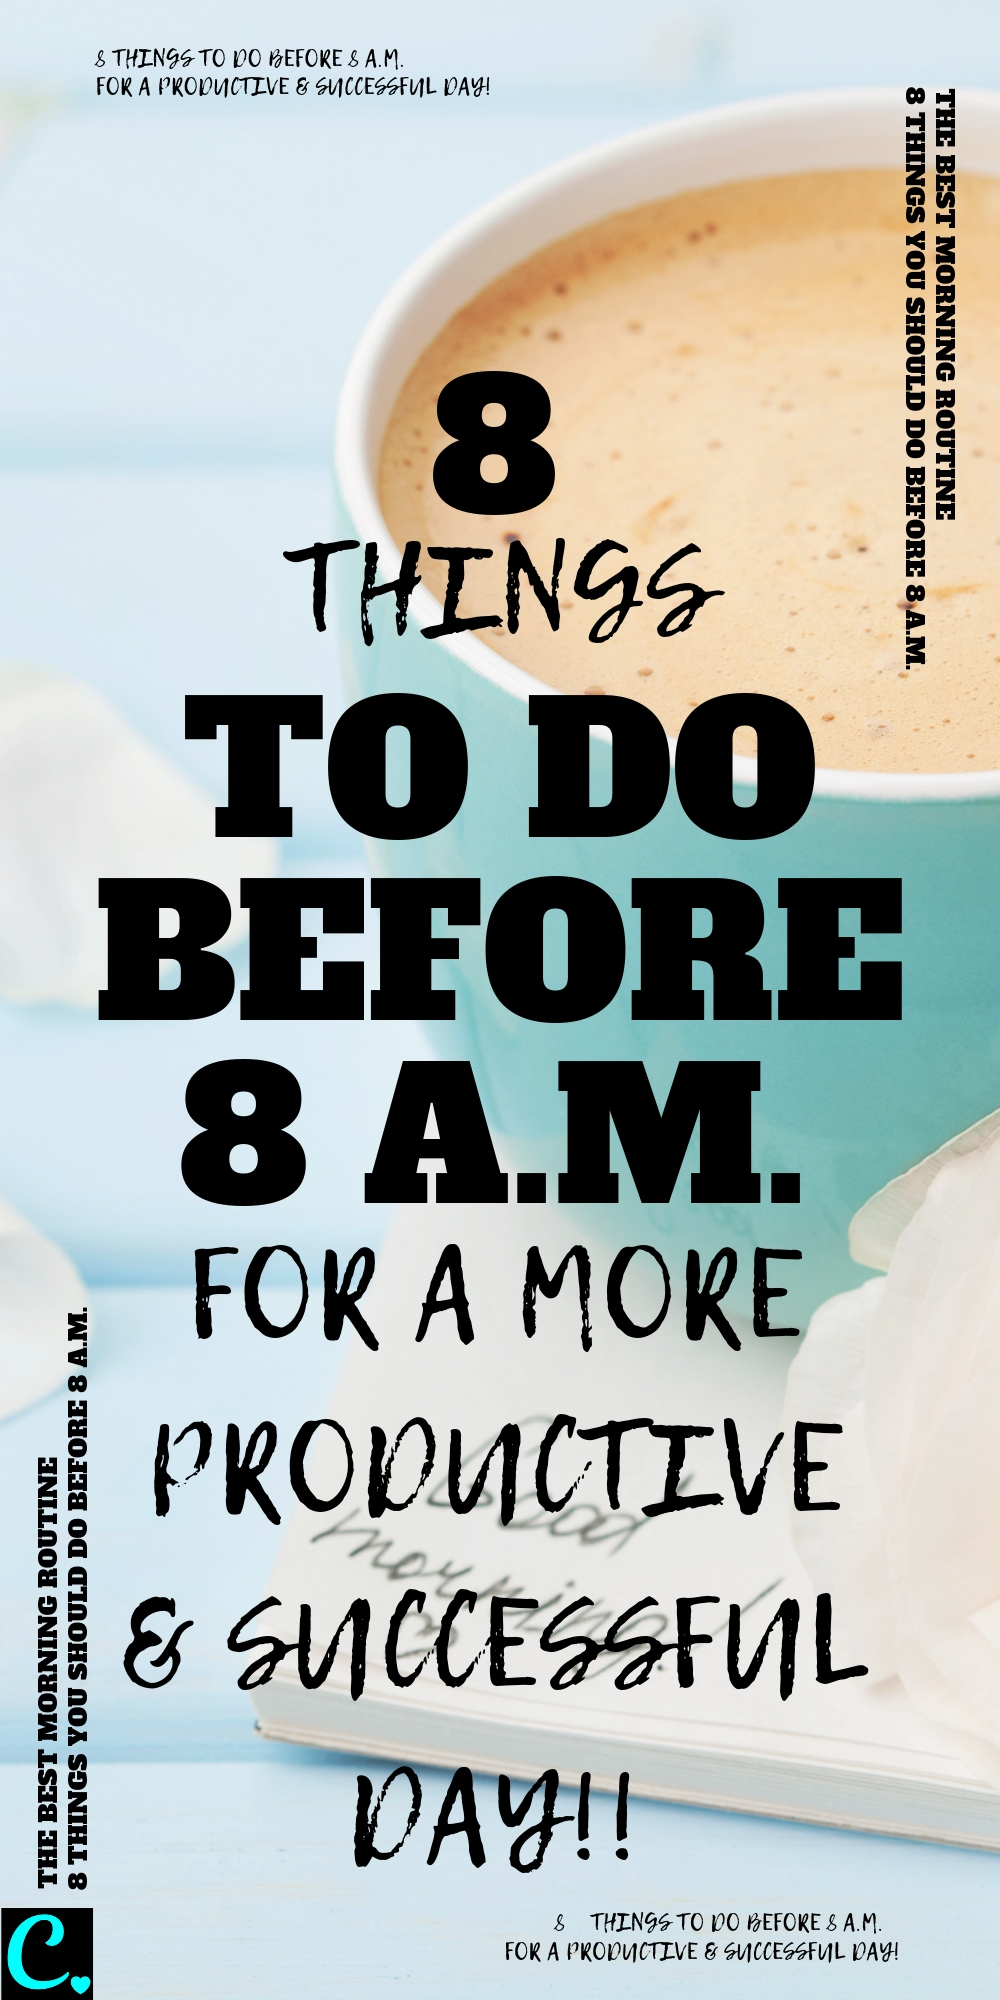 8 Things To Do Before 8am For A More Productive & Successful day   Good Morning Routine   Healthy morning routine   habits of successful people   productivity tips   Via: https://captivatingcrazy.com #productivitytips #morningroutine #goodhabits